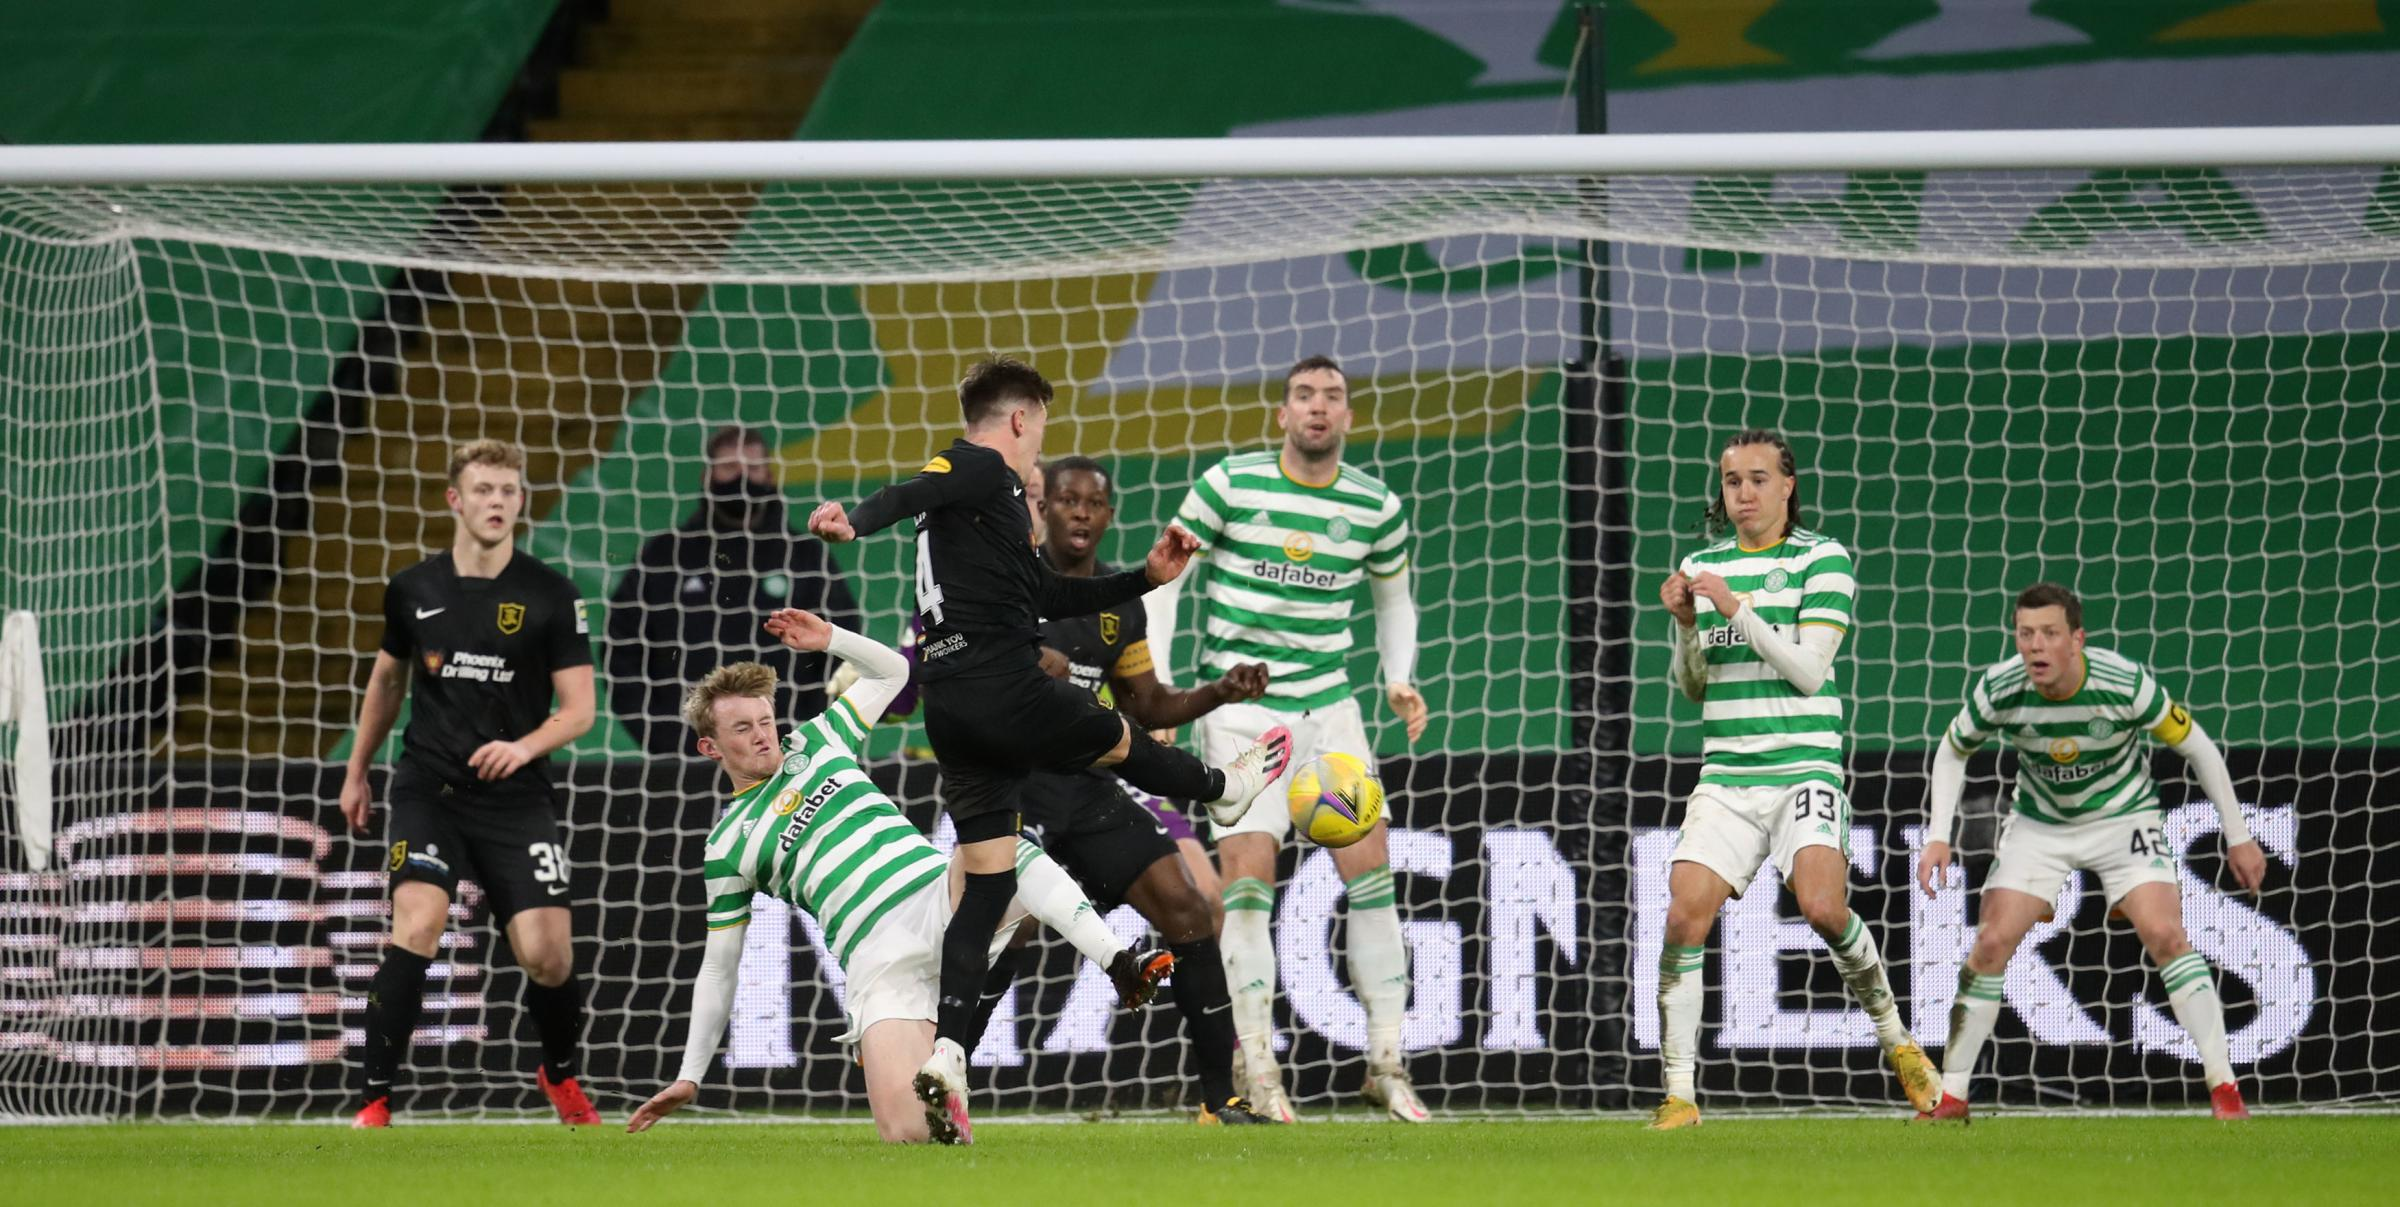 Celtic vs Livingston LIVE | stream, free, tv channel